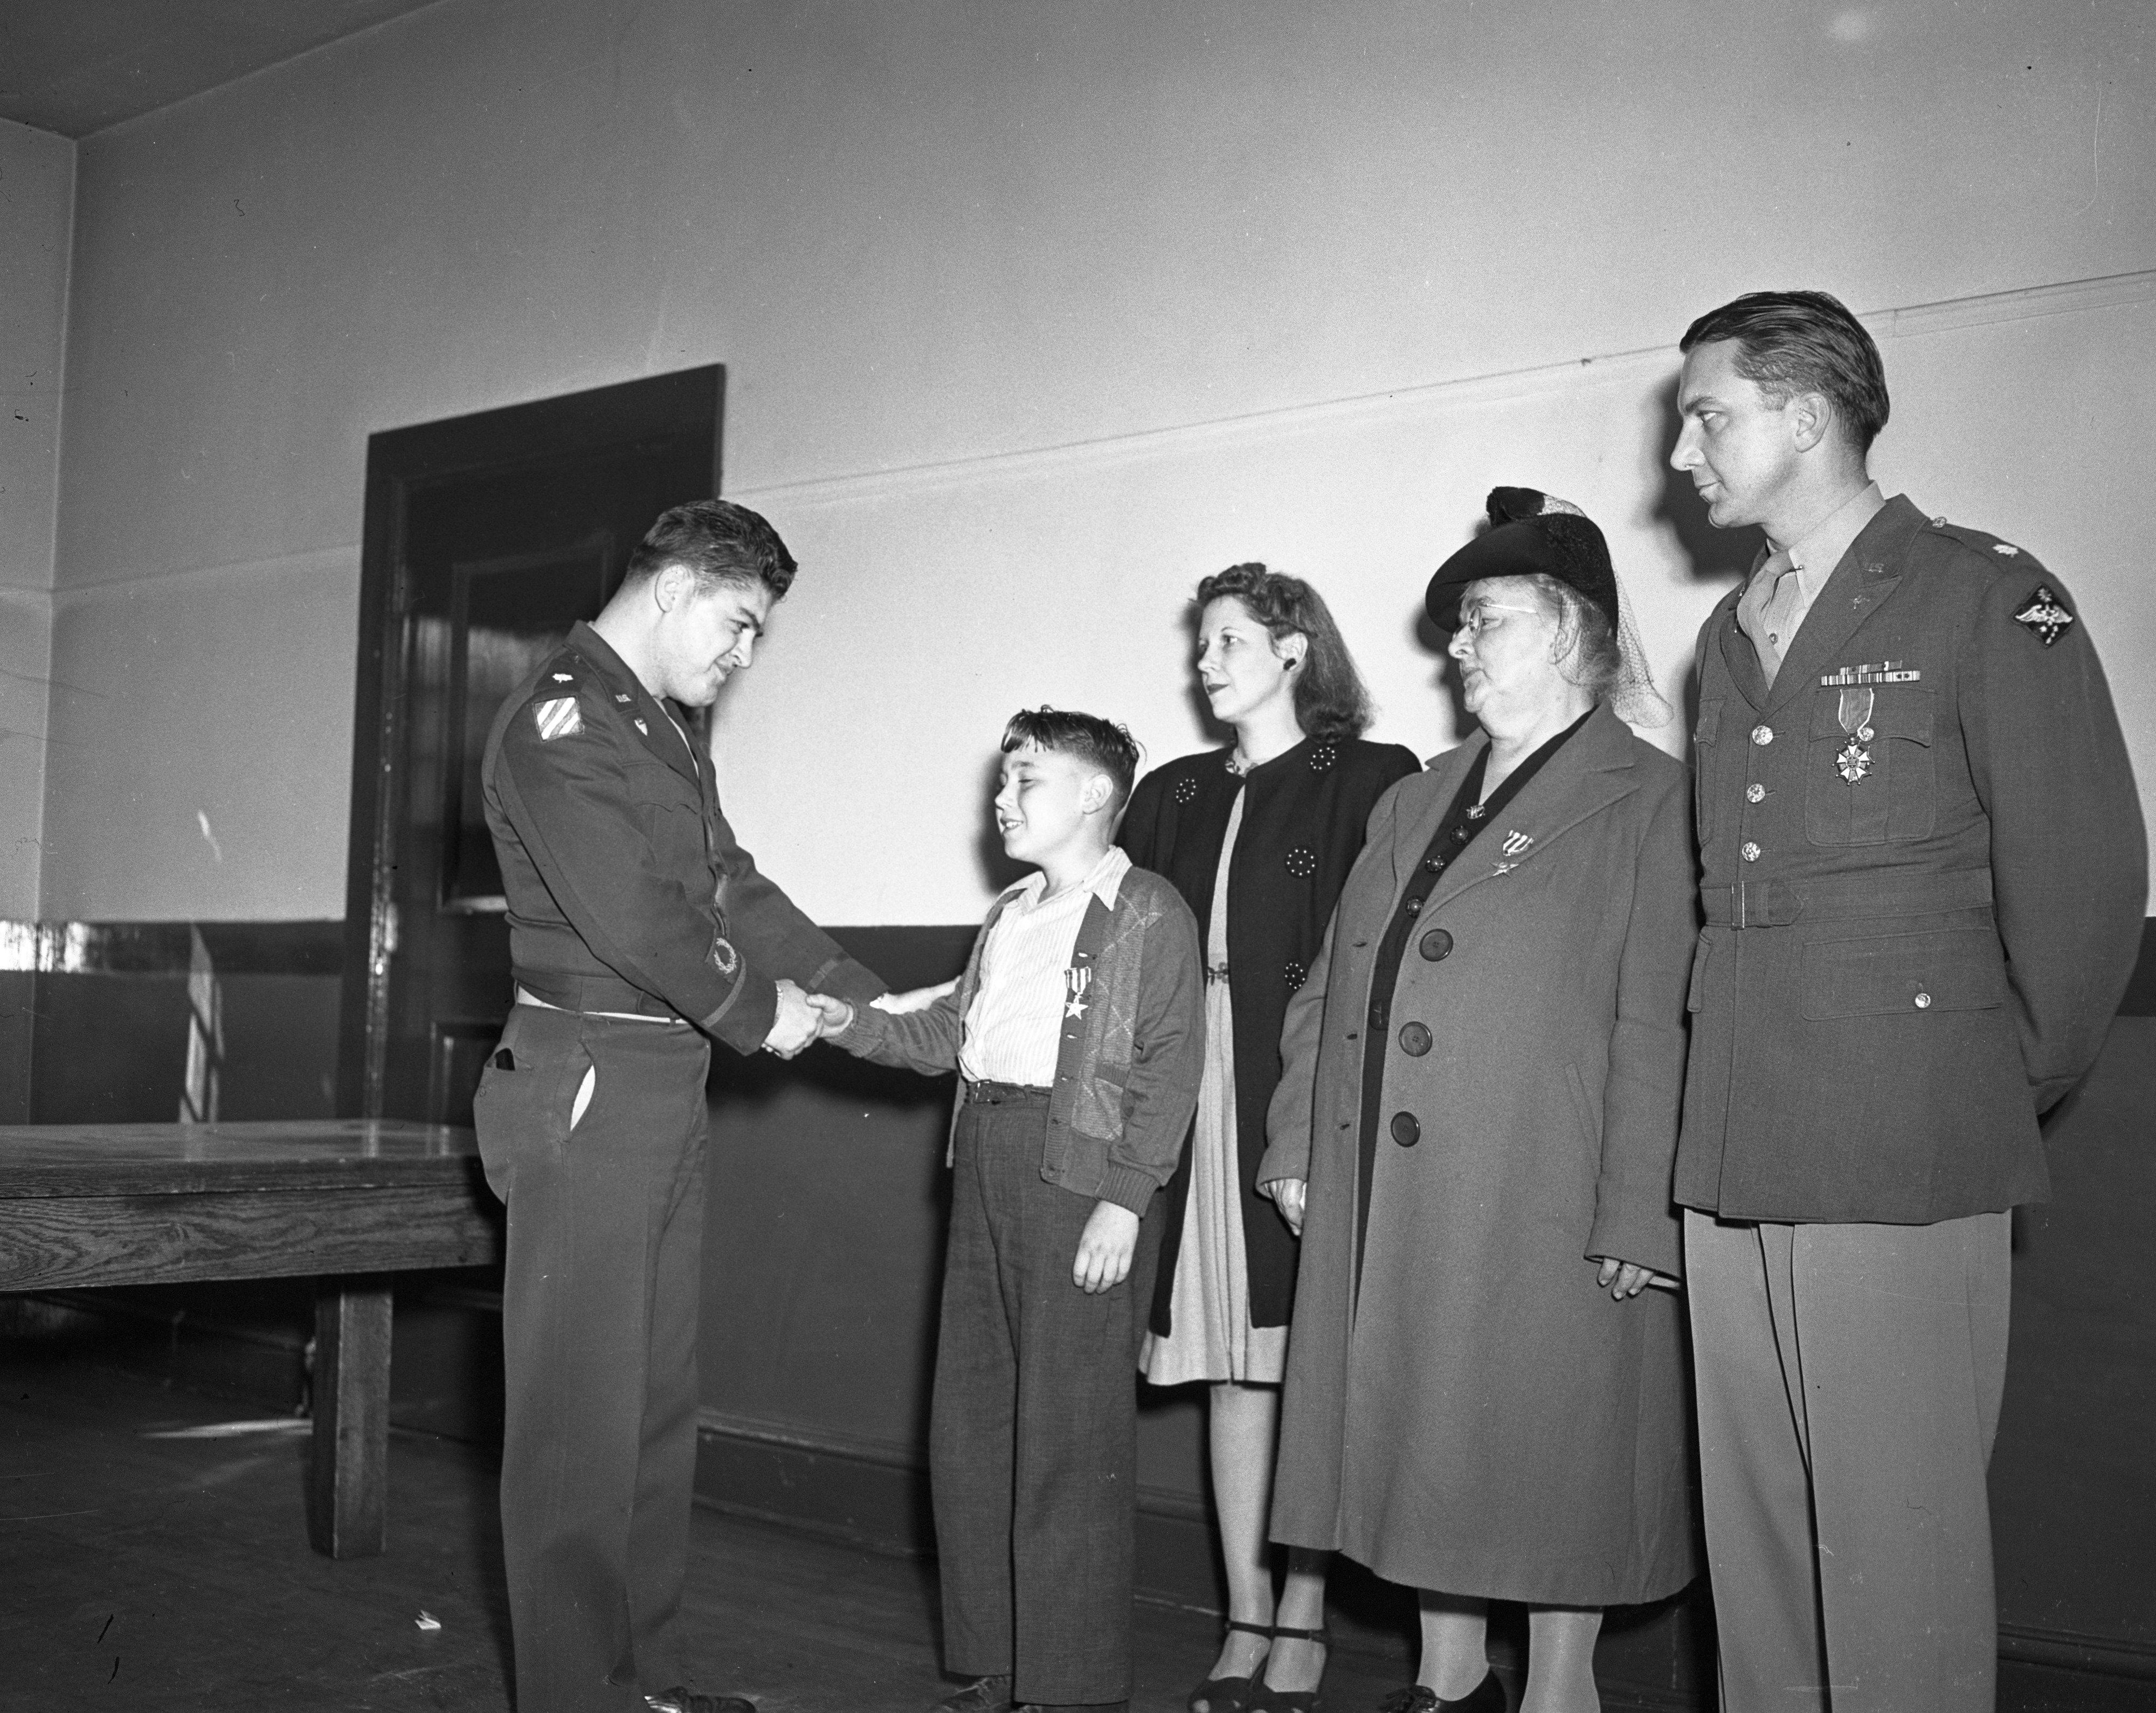 Richard Otto Donner receives the Silver Star medal awarded posthumously to his father, October 1946 image